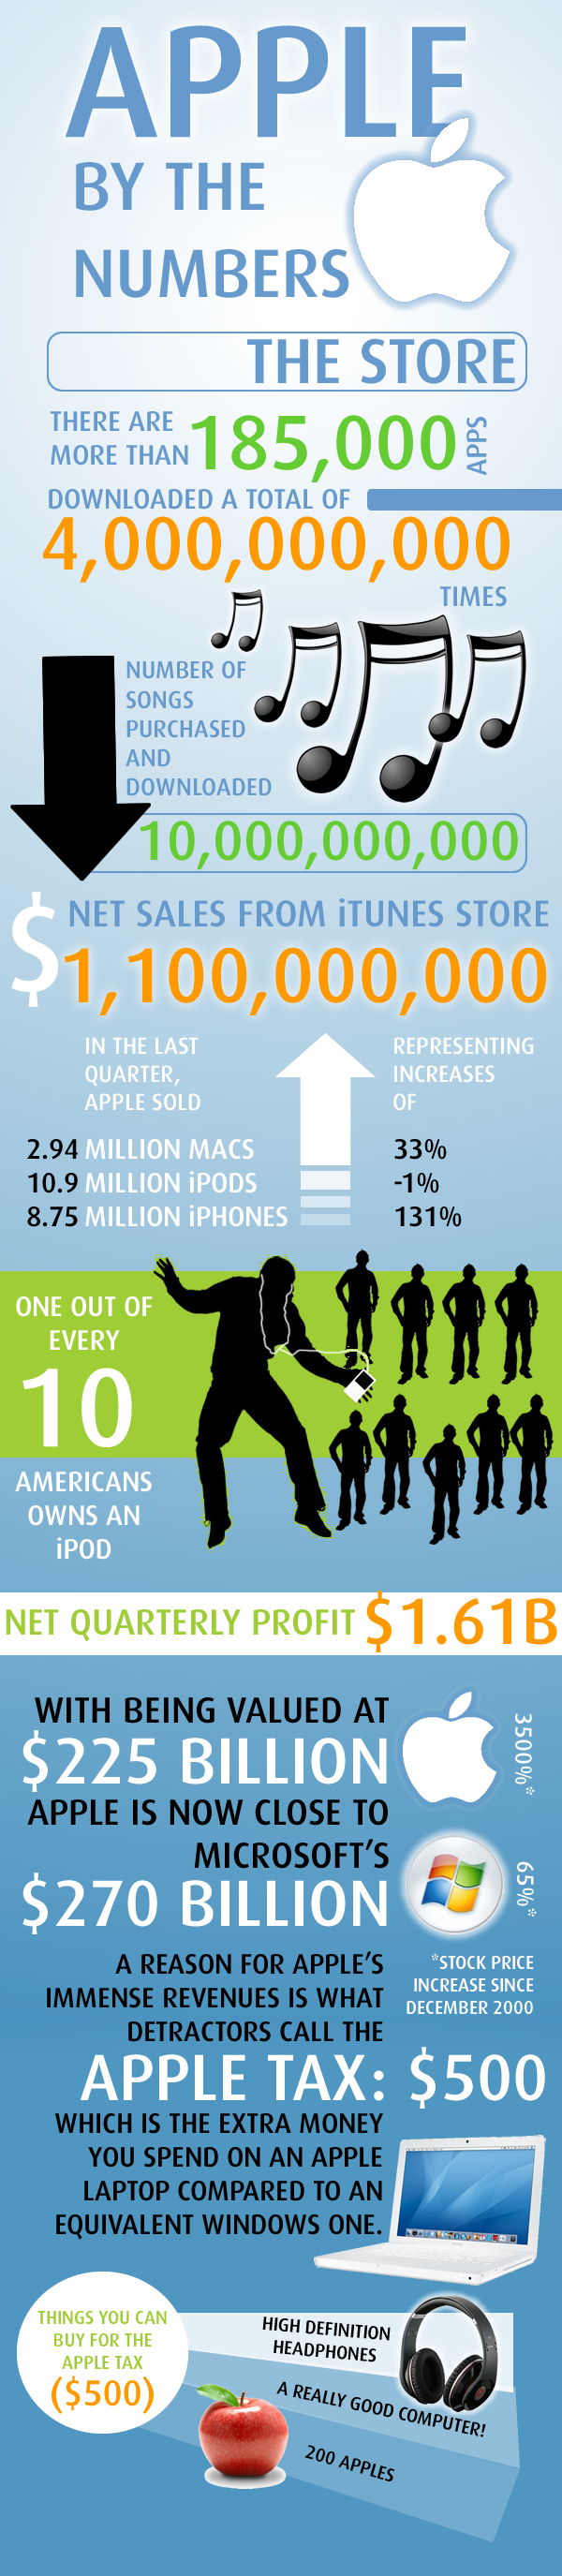 Apple Infographic.jpg